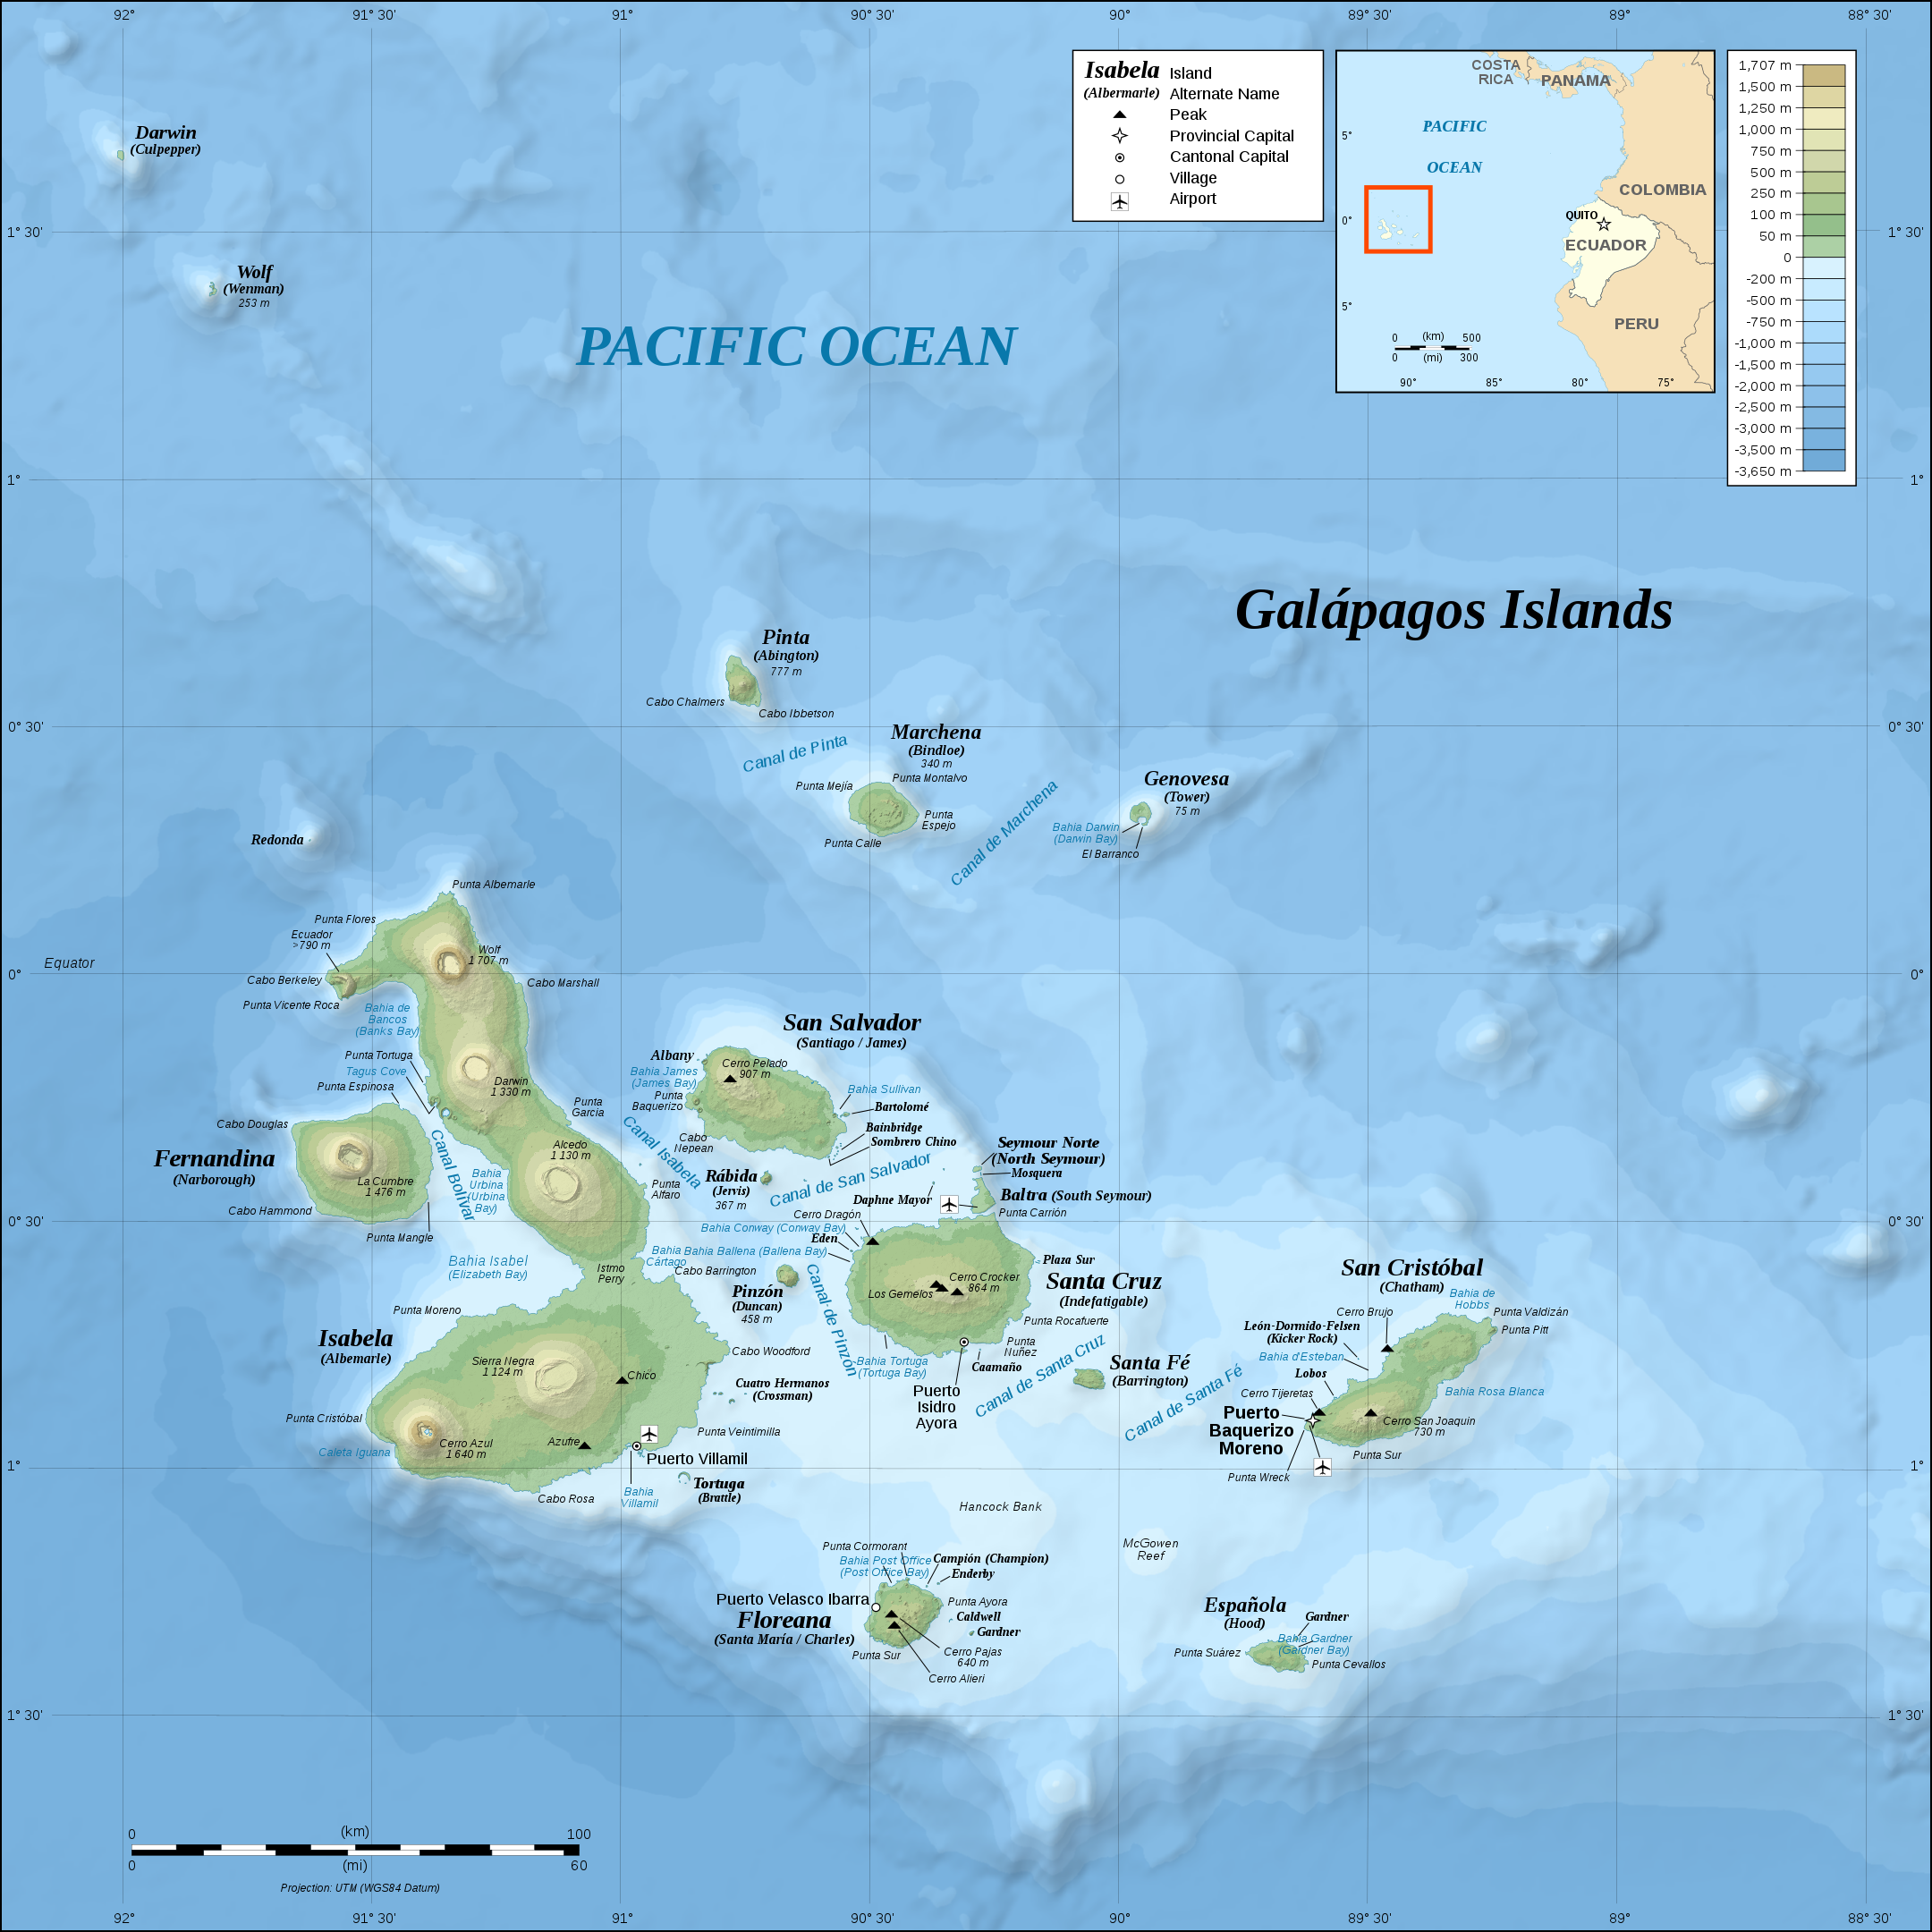 Topographical map of the Galápagos Islands off the coast of Ecuador